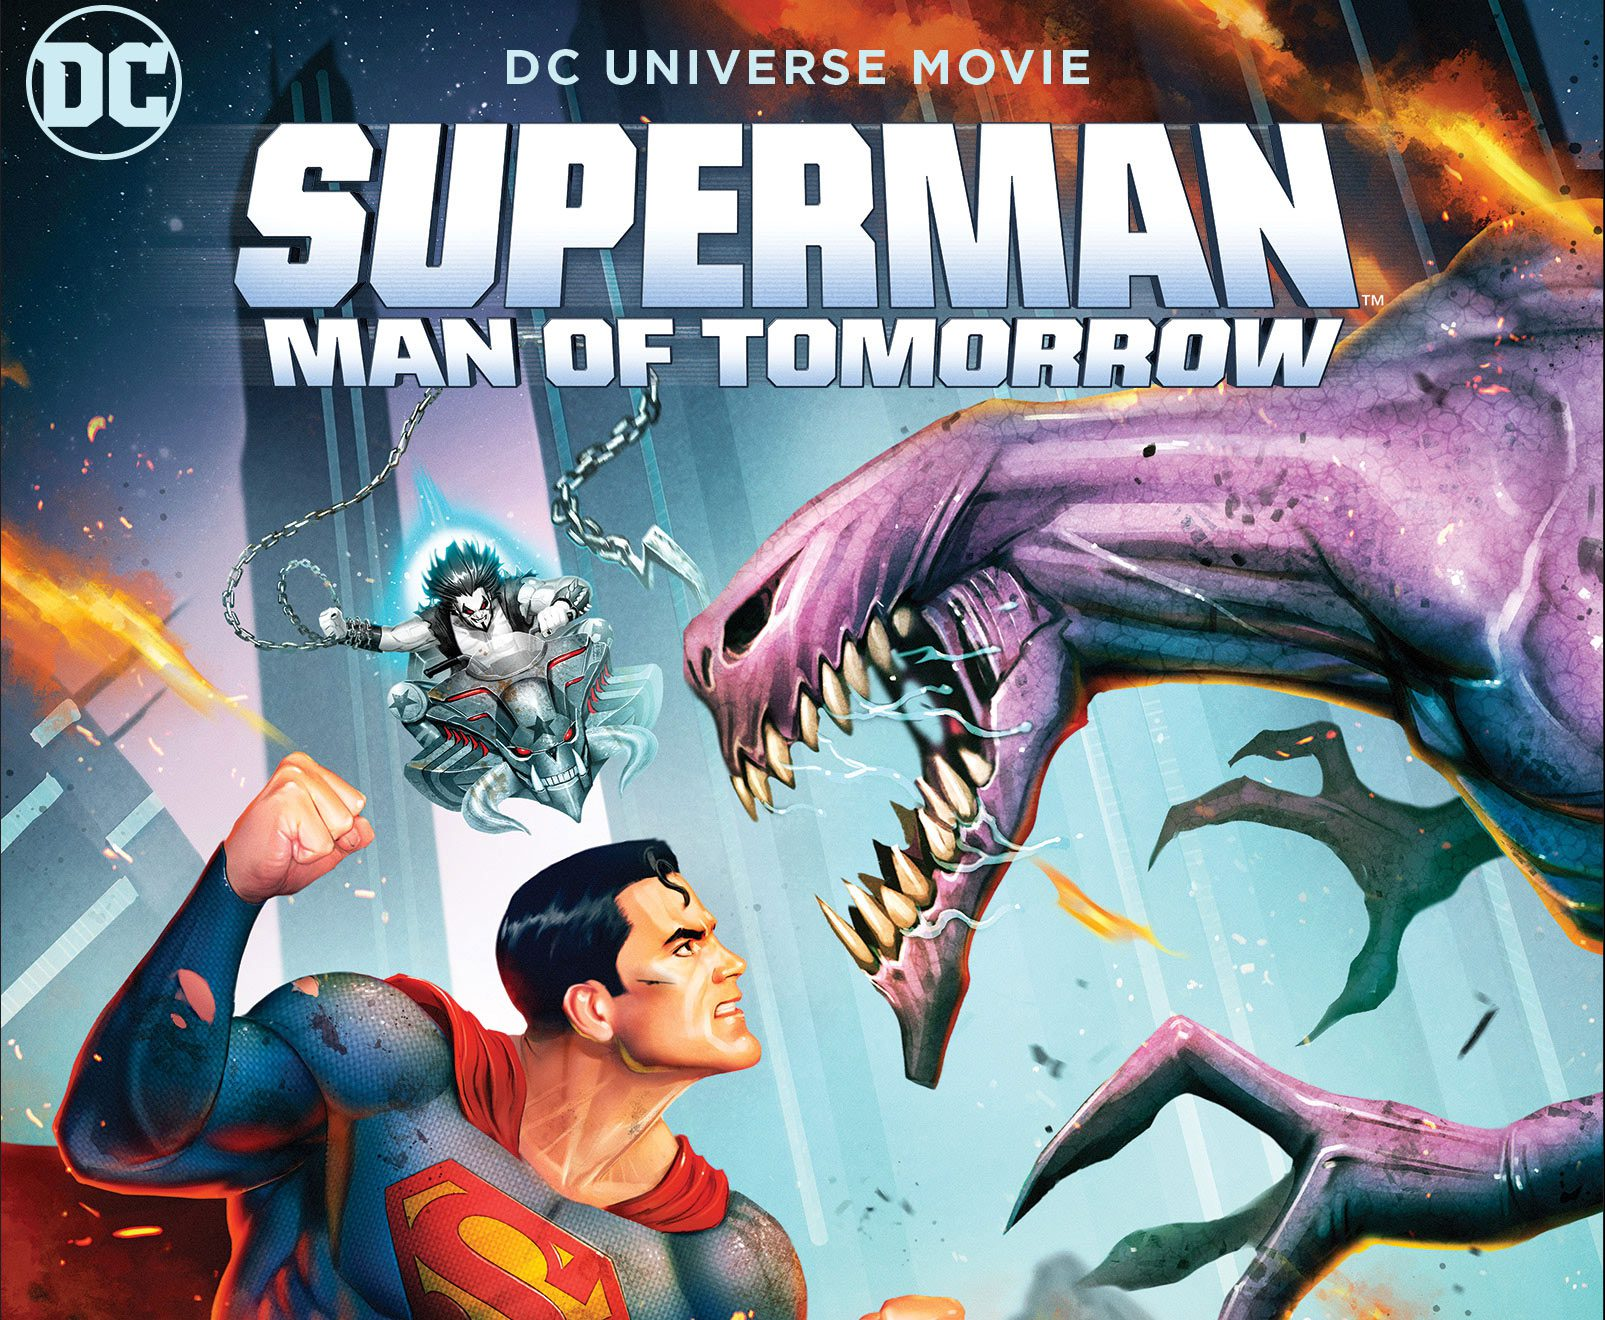 Superman: Man of Tomorrow coming to digital (8/23) and Blu-Ray/4K (9/8)